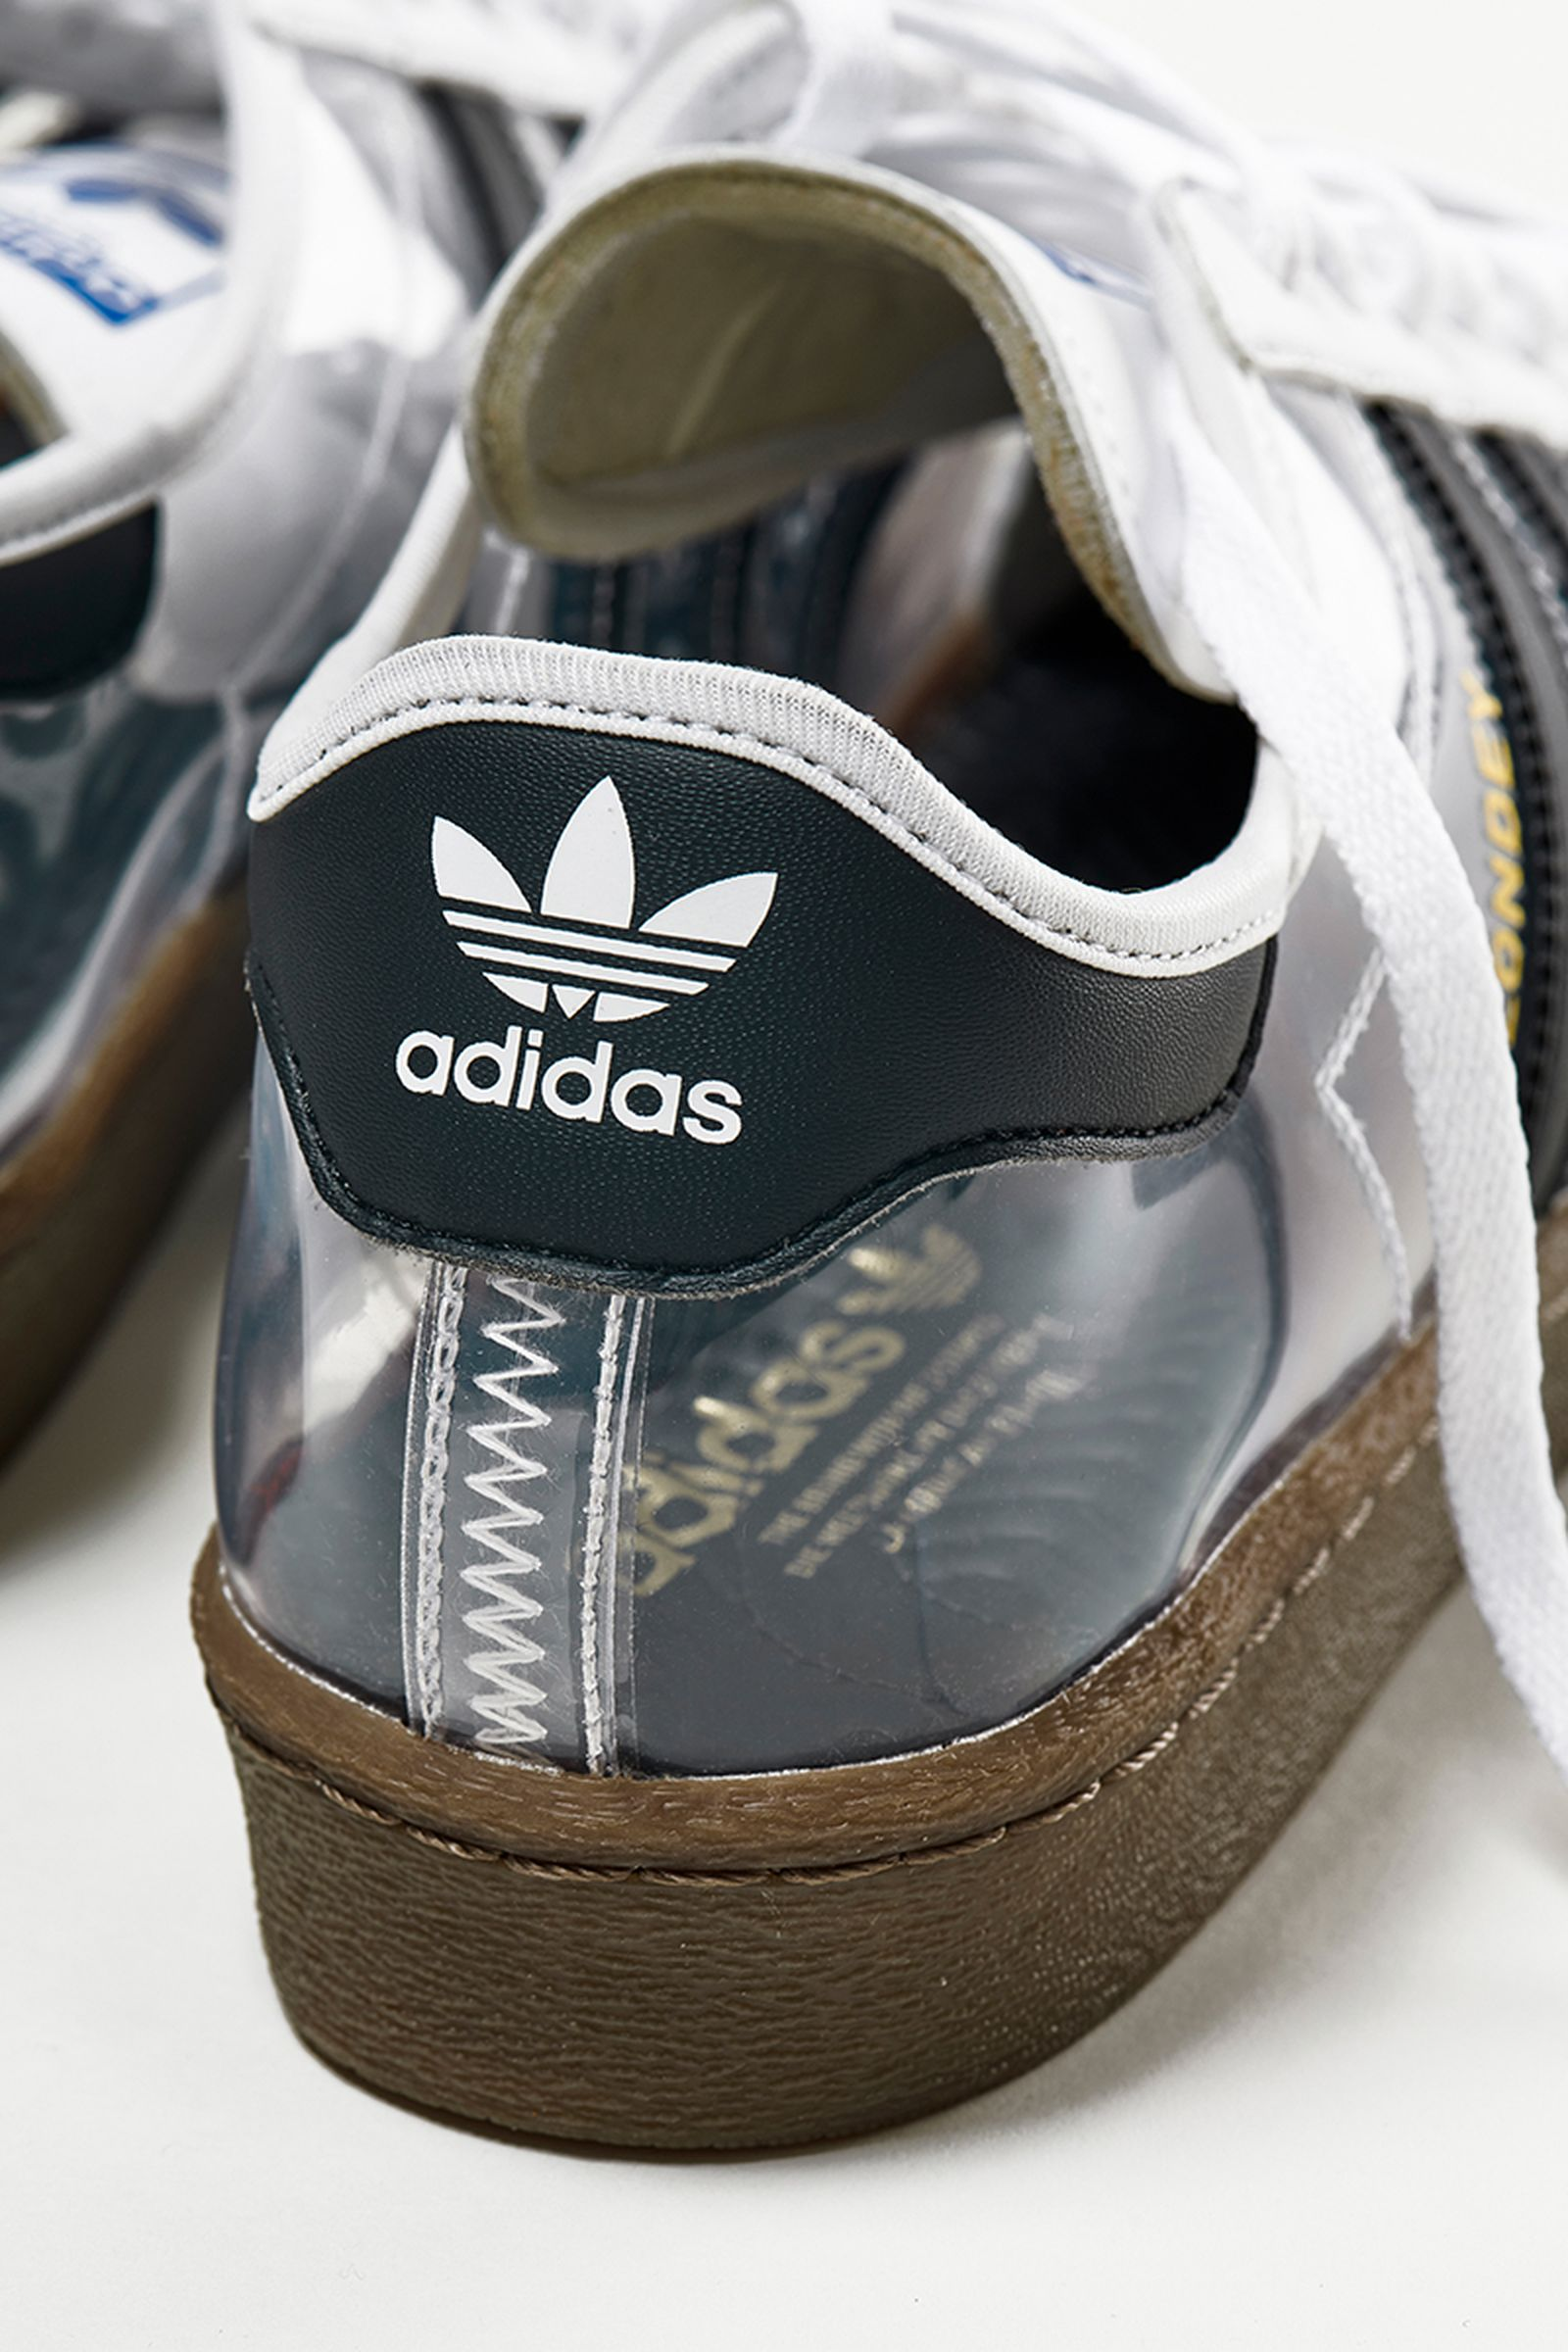 blondey-mccoy-adidas-superstar-80s-clear-release-date-price-1-04